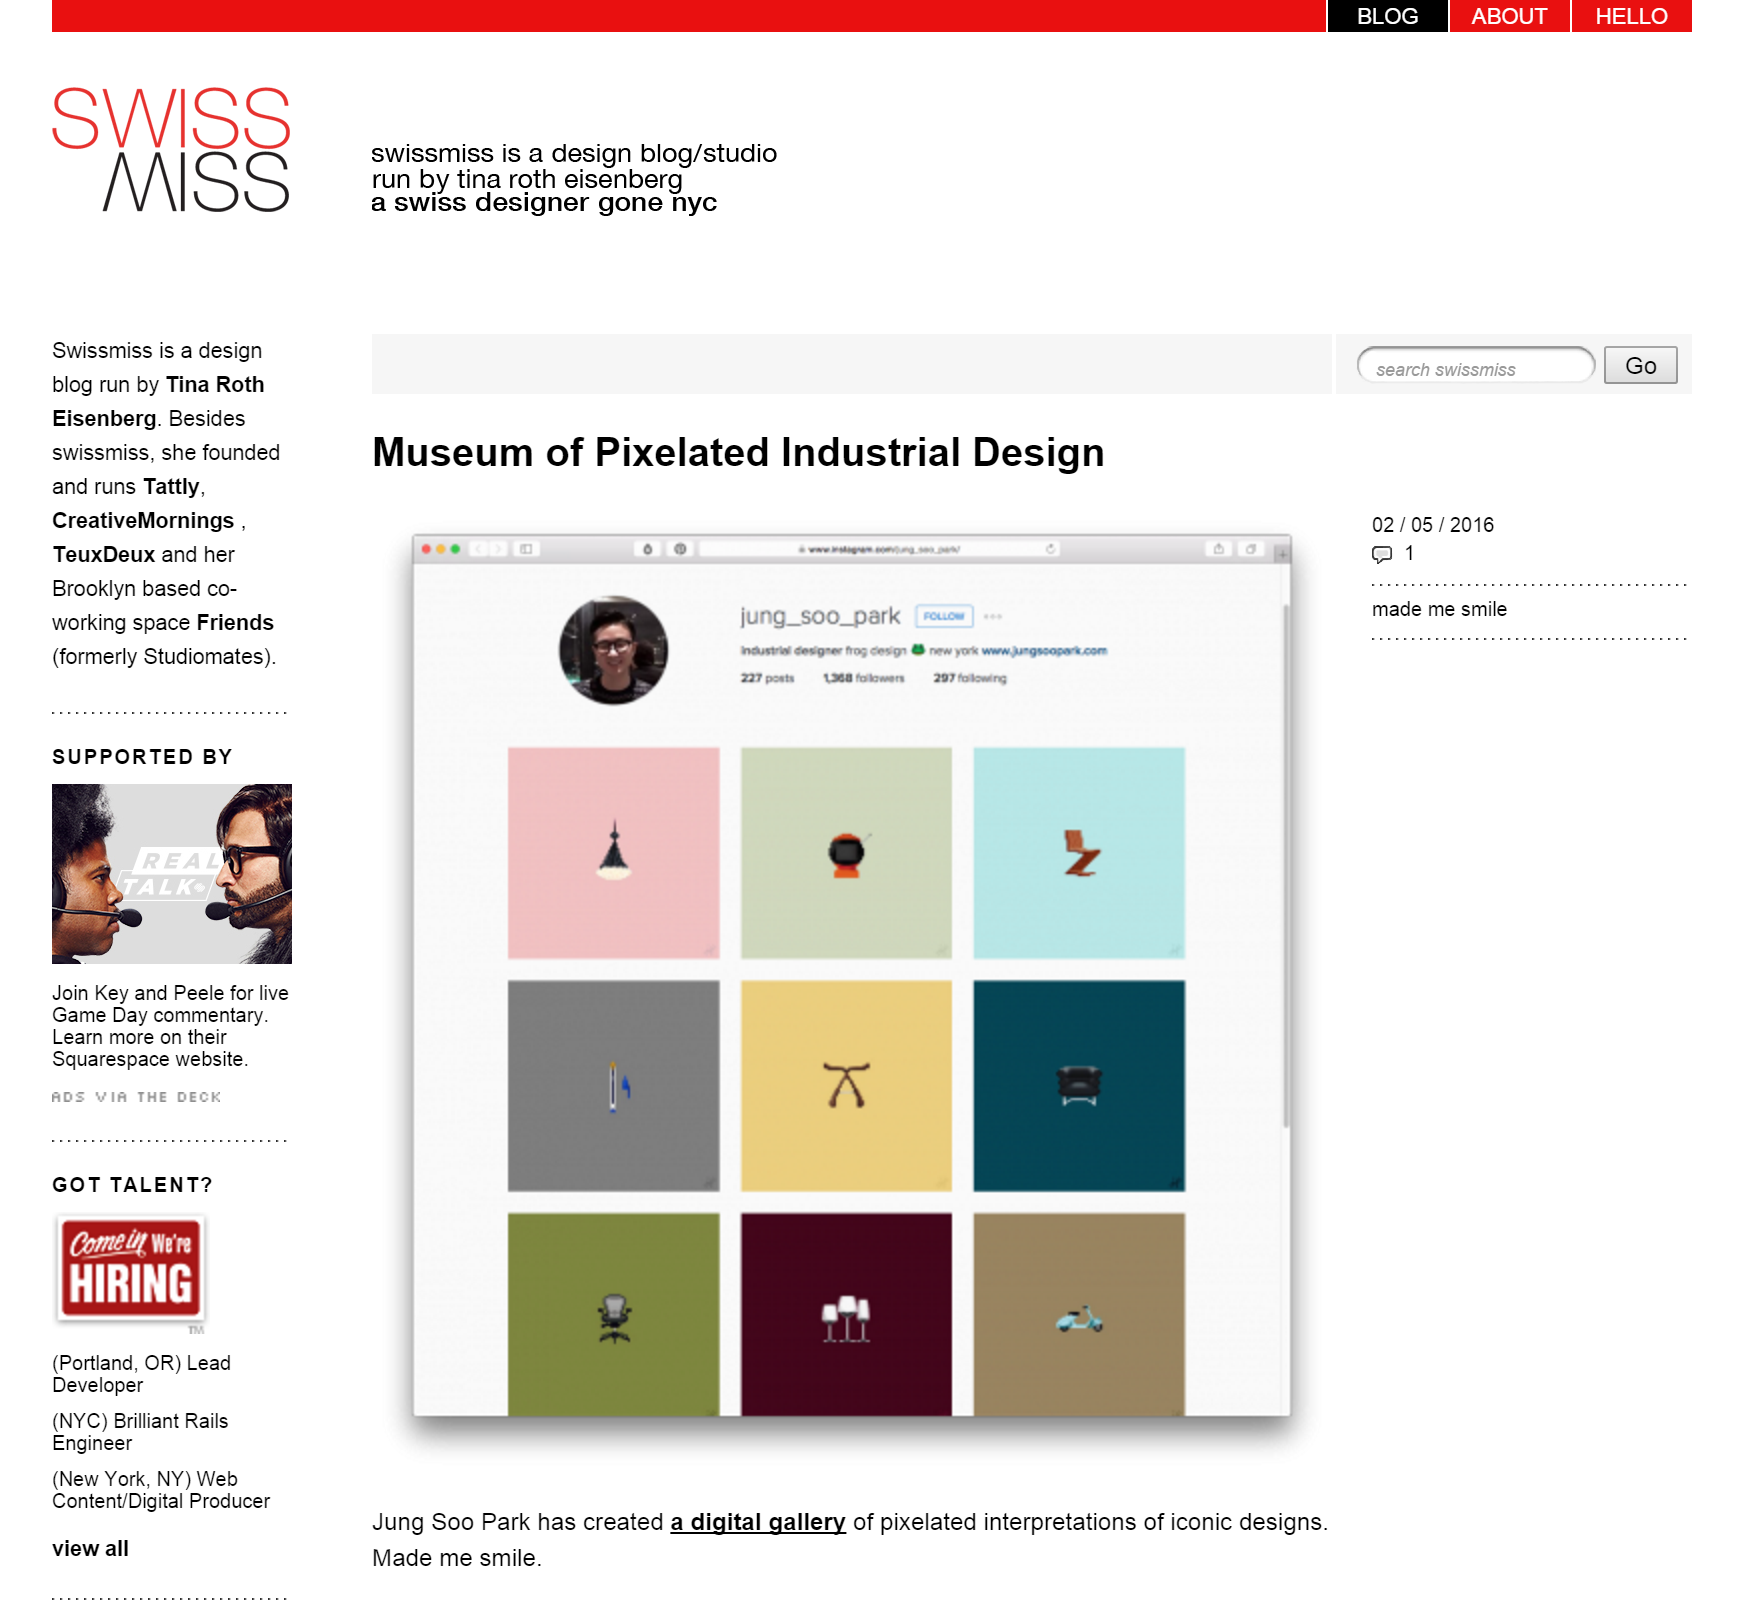 screencapture-www-swiss-miss-com-2016-02-museum-of-pixelated-industrial-design-html-1454699435082.png